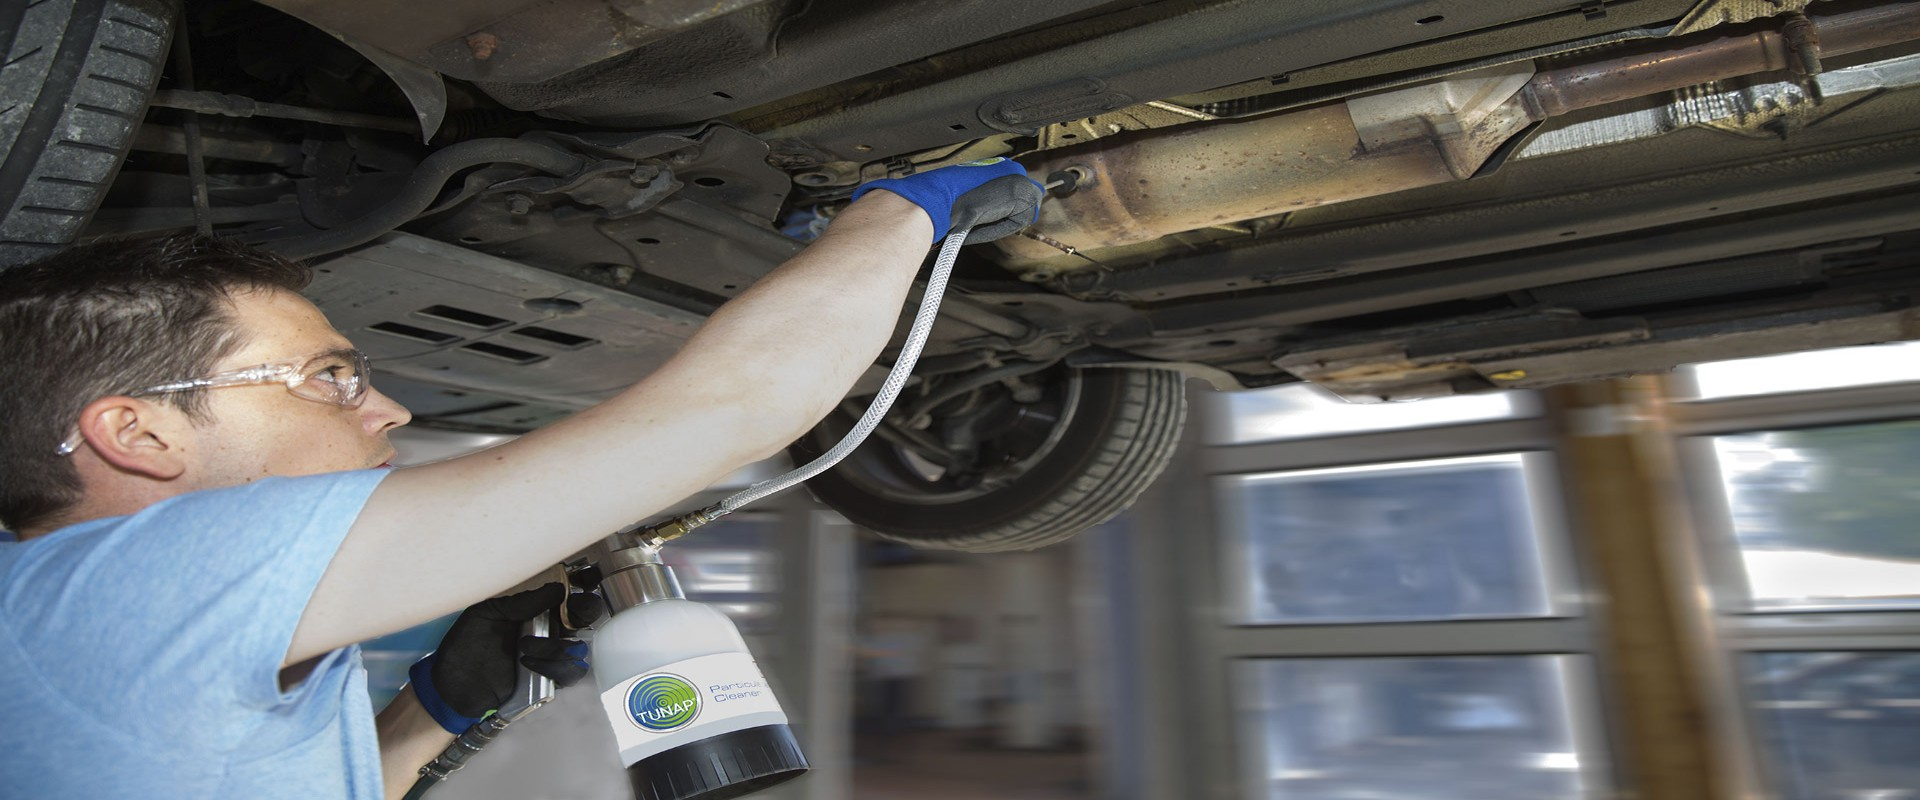 Mechanic under a lifted car using a cup gun with hose and probe to clean a diesel particulate filter